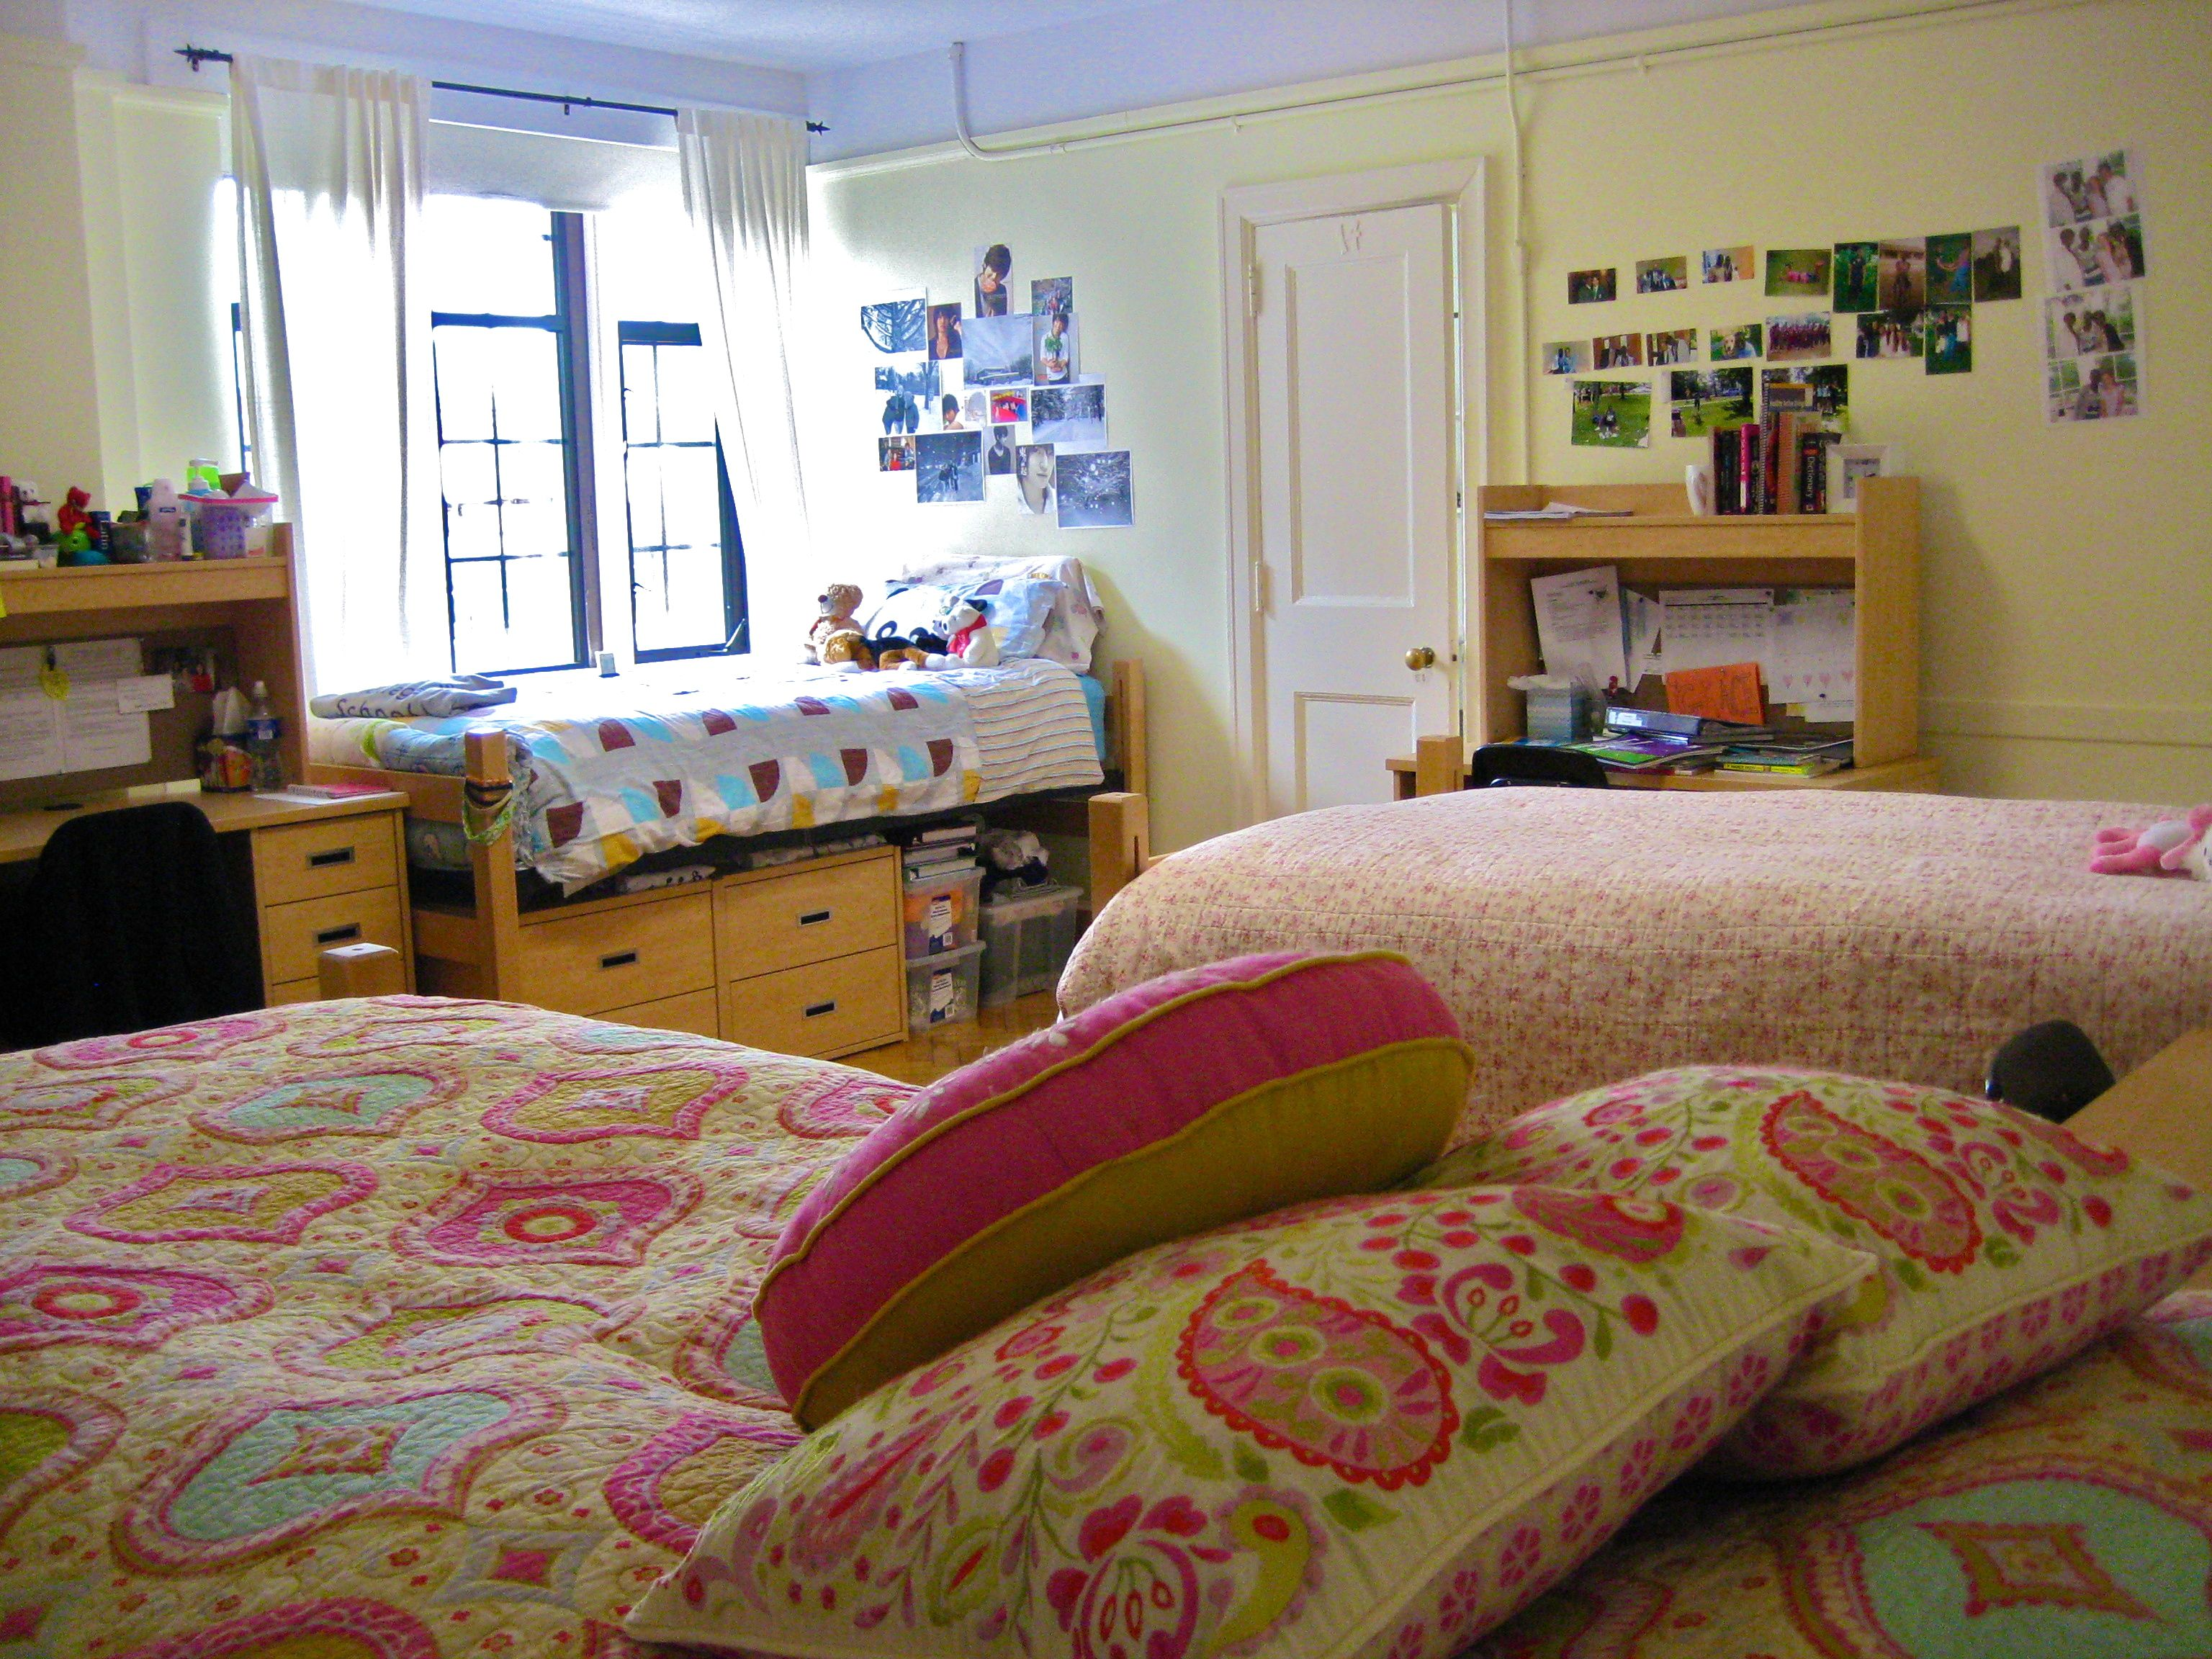 I Wish My Room Looked Like That In Boarding School